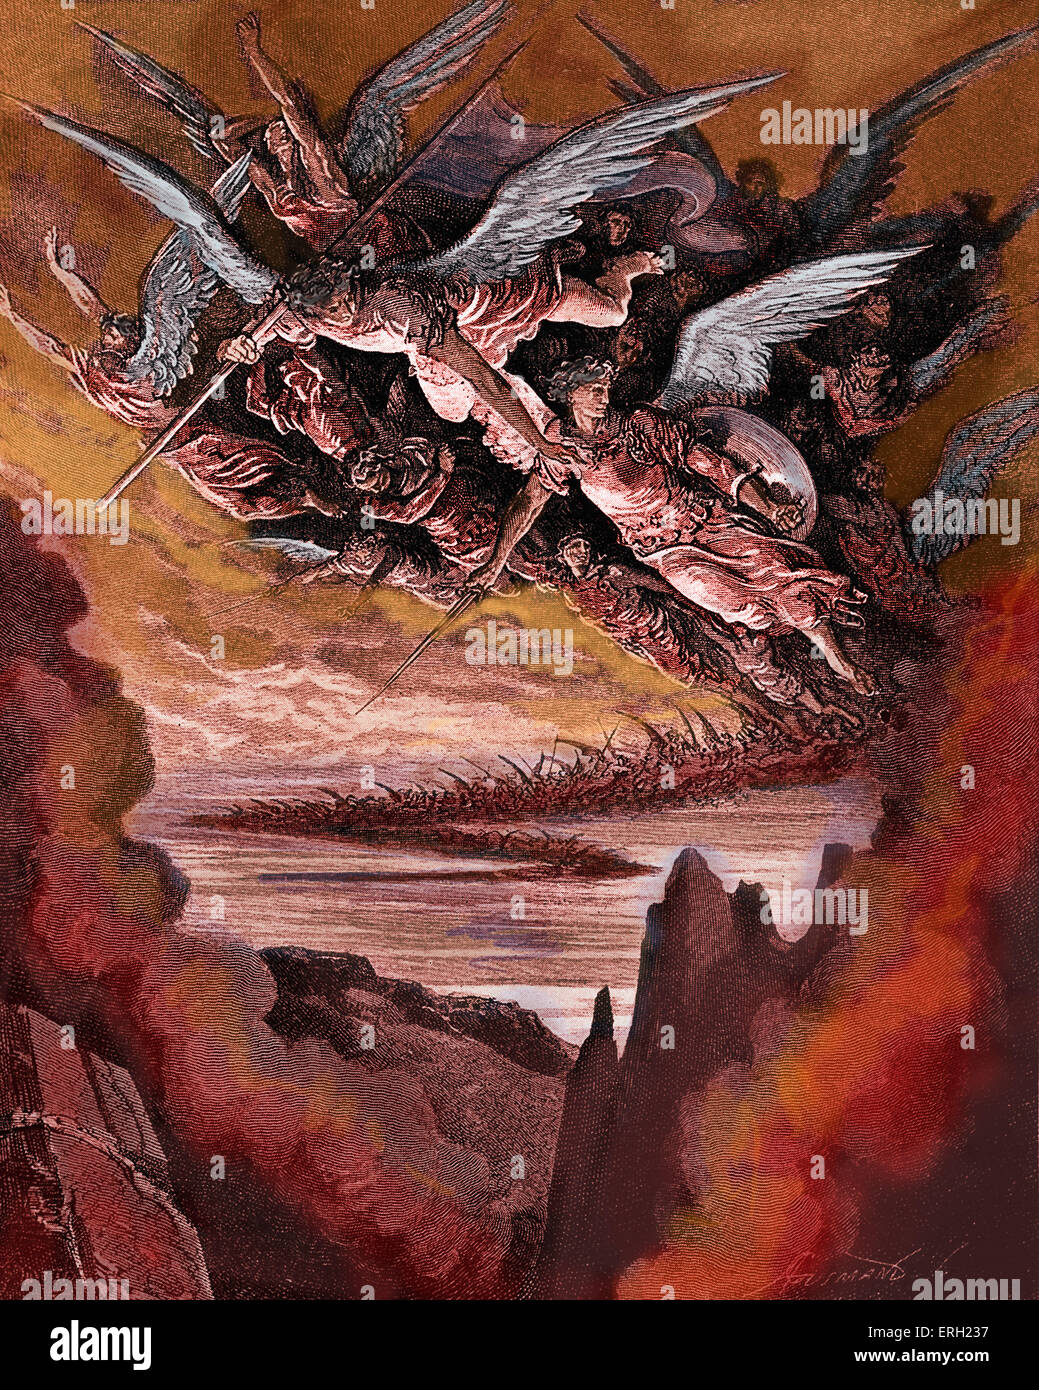 Paradise Lost was first published in 1674. Caption: So numberless were  those bad angels seen hovering on wing under the cope of hell. Illustration  by Doré.